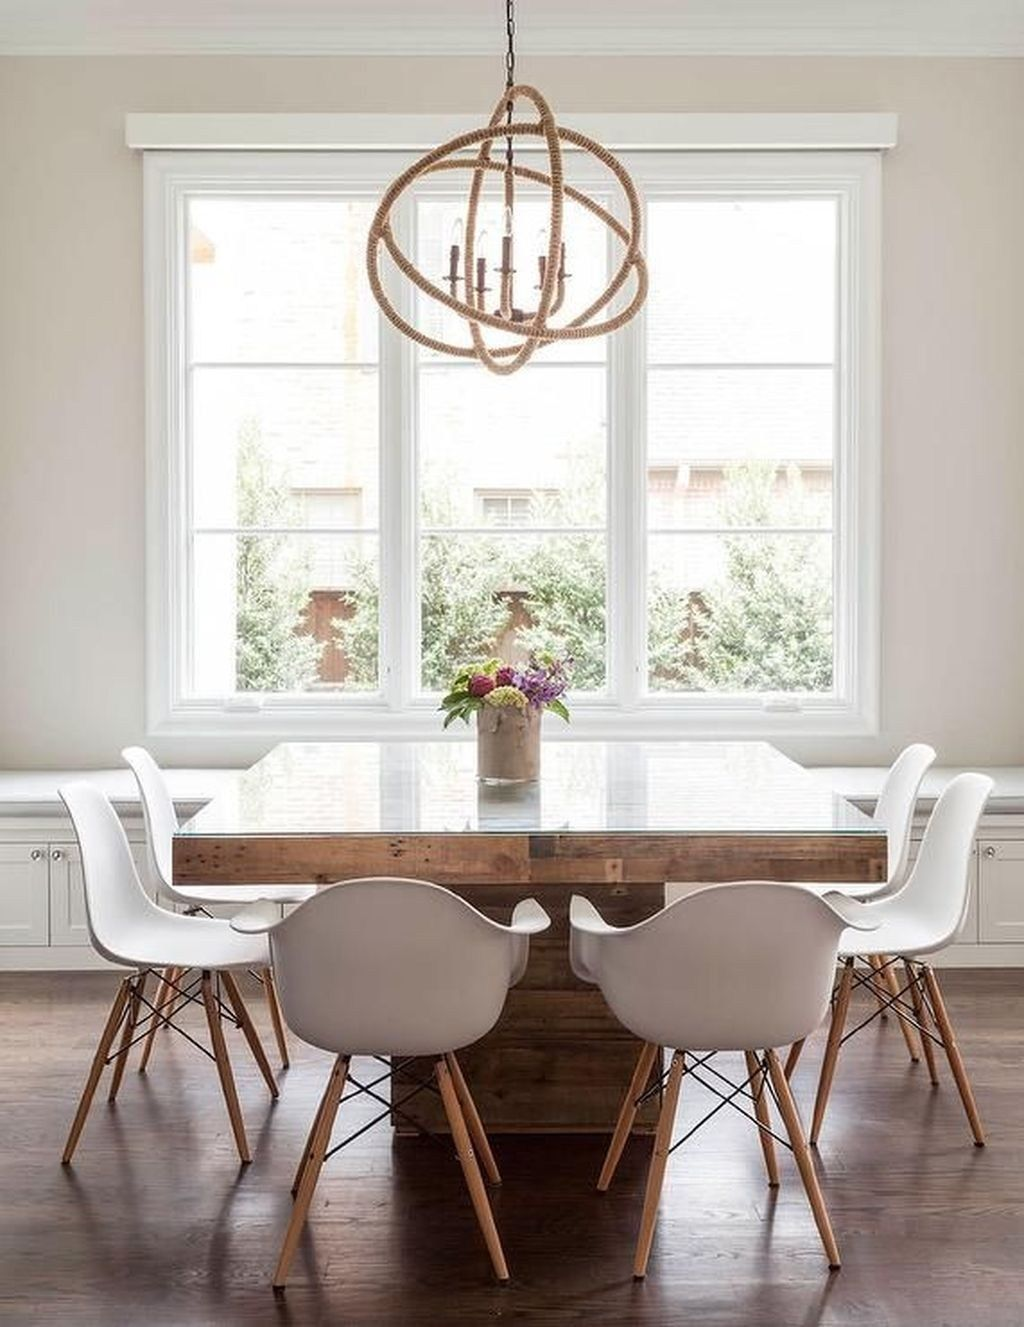 Affordable Dining Room Side Table Decor Ideas 38 Square Wood Dining Tables Square Dining Tables Dining Room Design